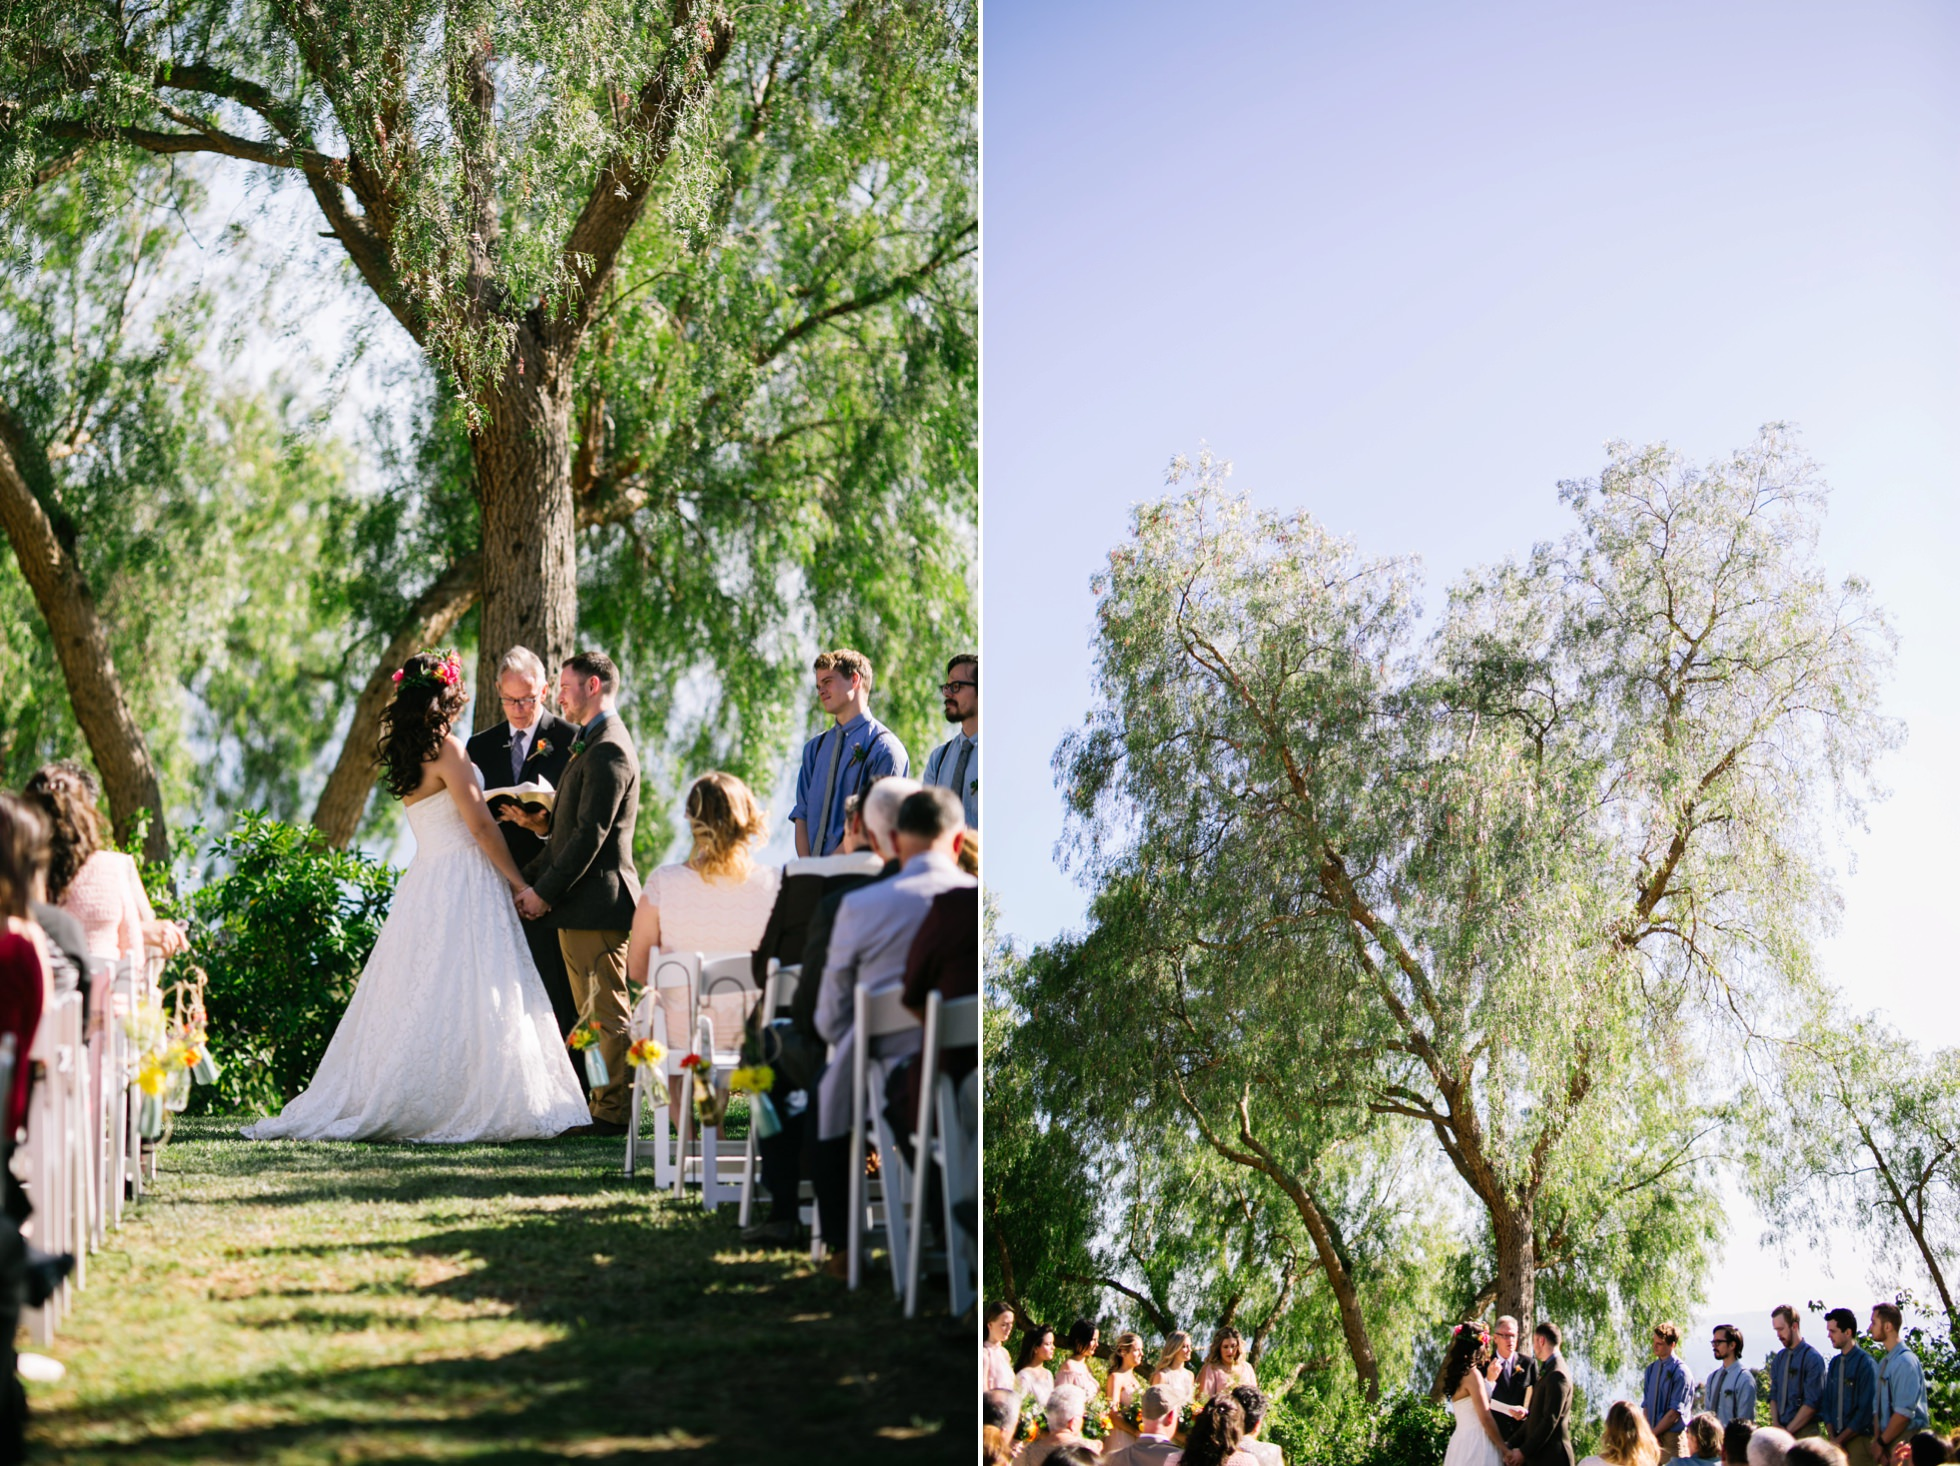 Palos Verdes Southern California Destination Wedding | brittneyraine.com 0043